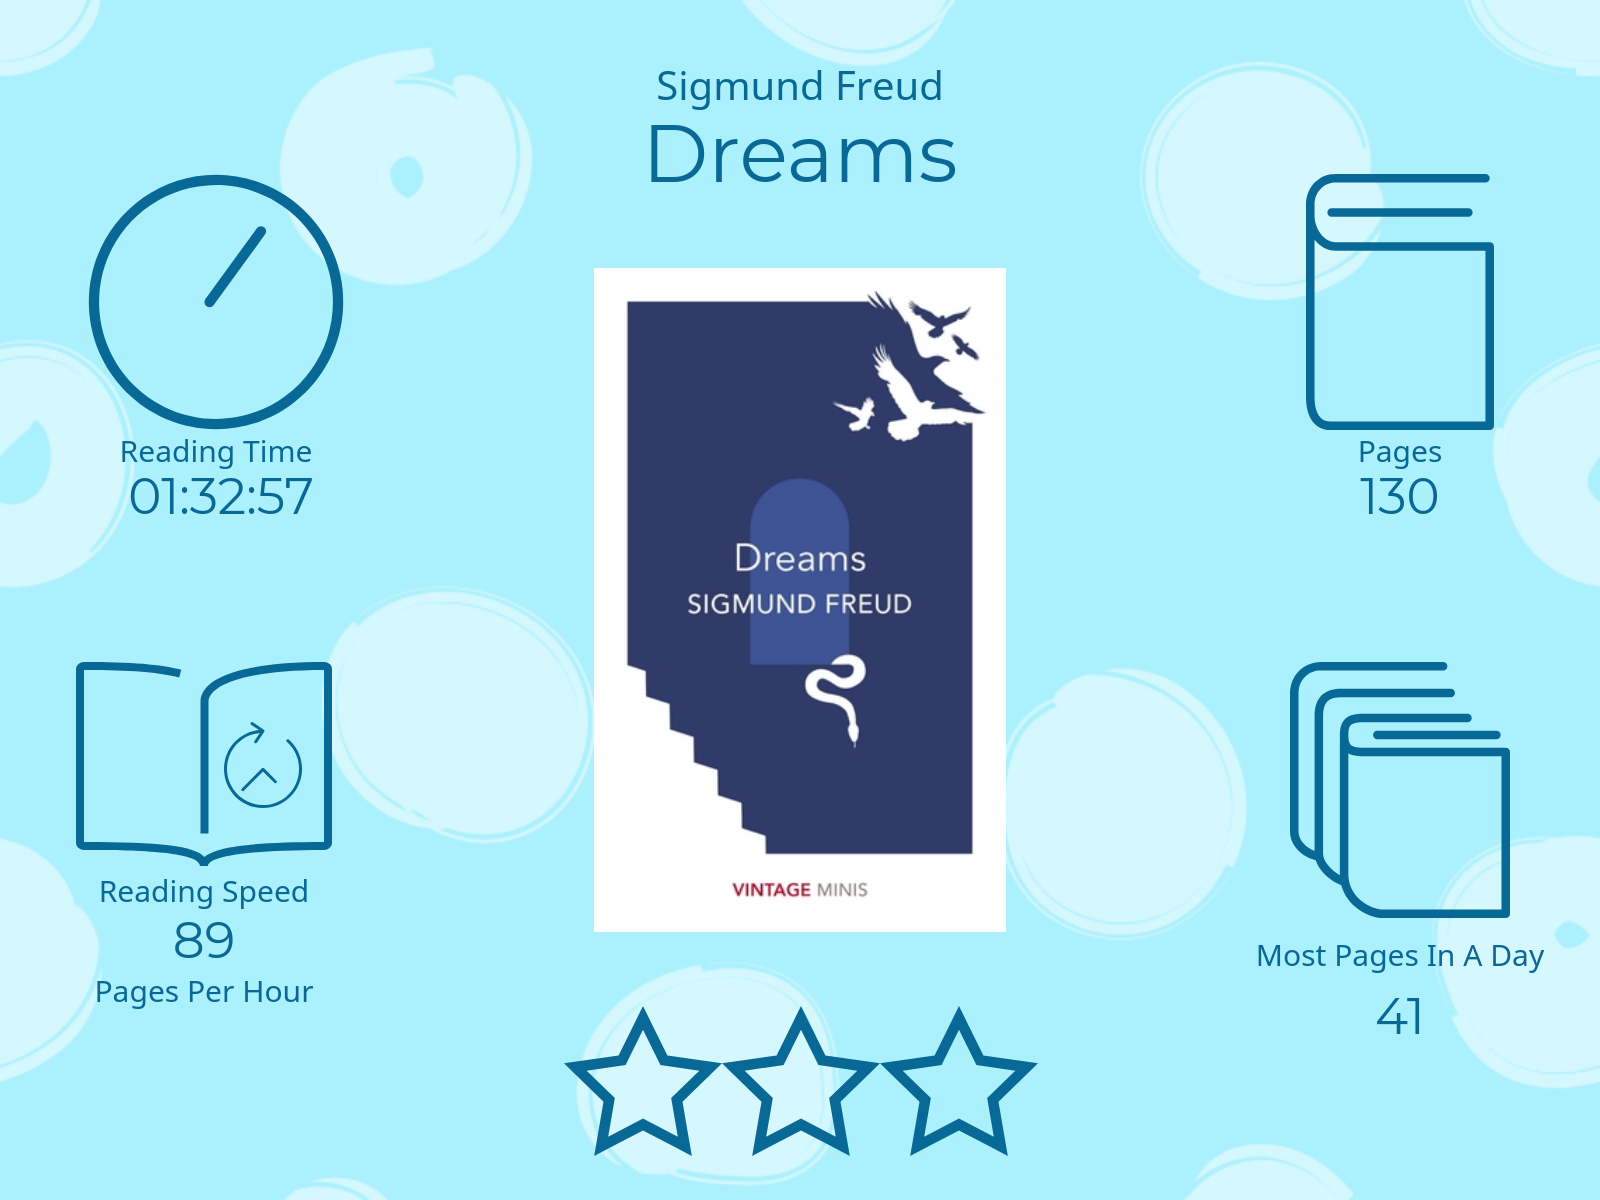 Dreams by Sigmund Freud 3 stars Read Time 1 hour 328 Minutes and 57 seconds 130 Pages 89 pages per hour Most pages read in a day: 41